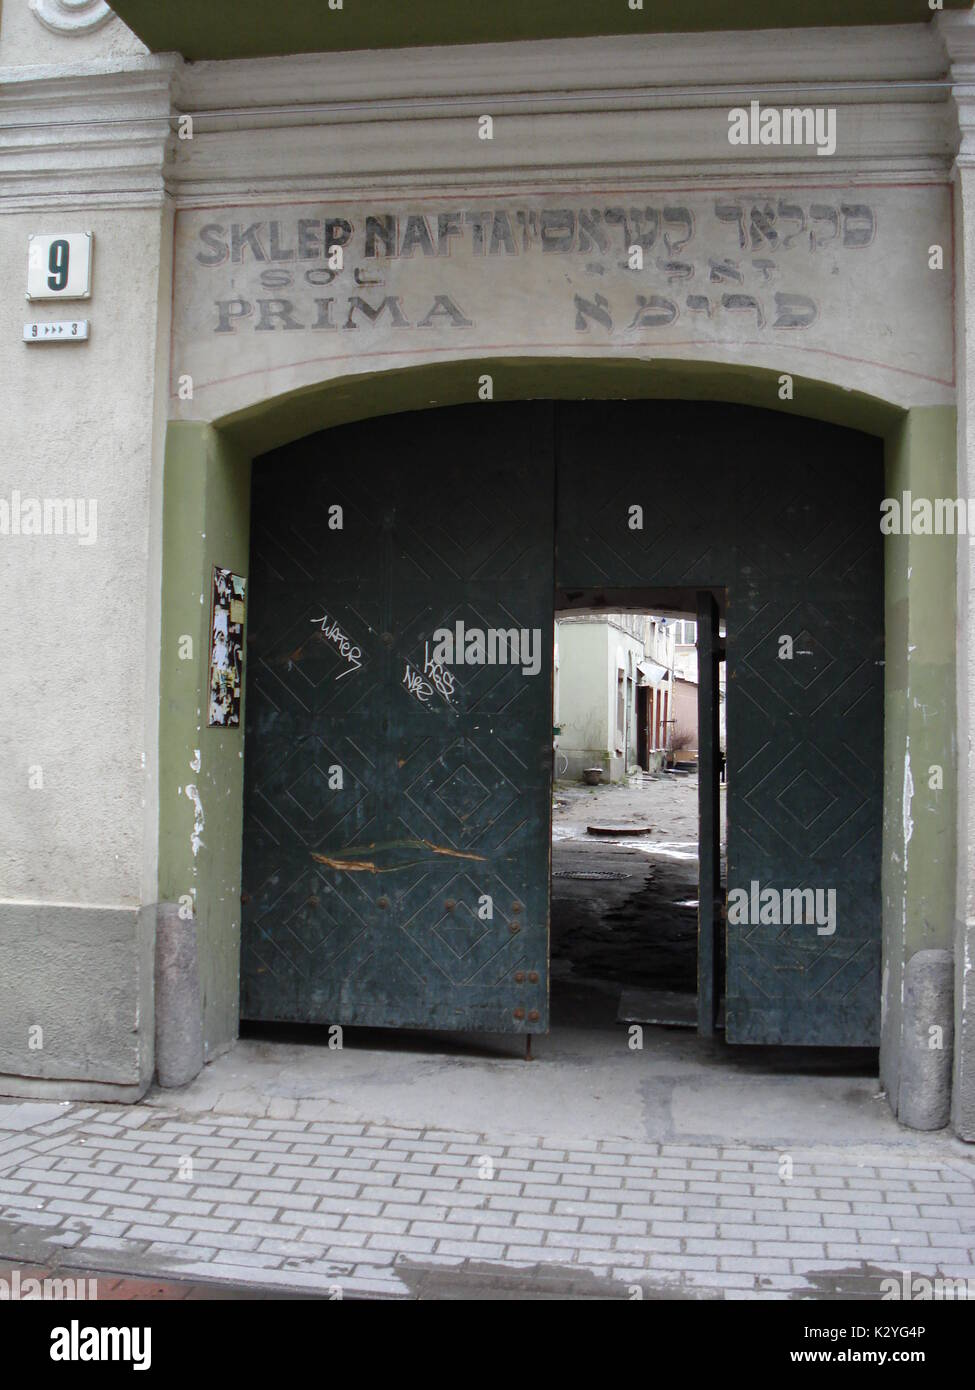 In the old town of Vilnius (Lithuania), the porch of a house revealed an inscription in Polish and Yiddish:'Prima petroleum products' - Stock Image